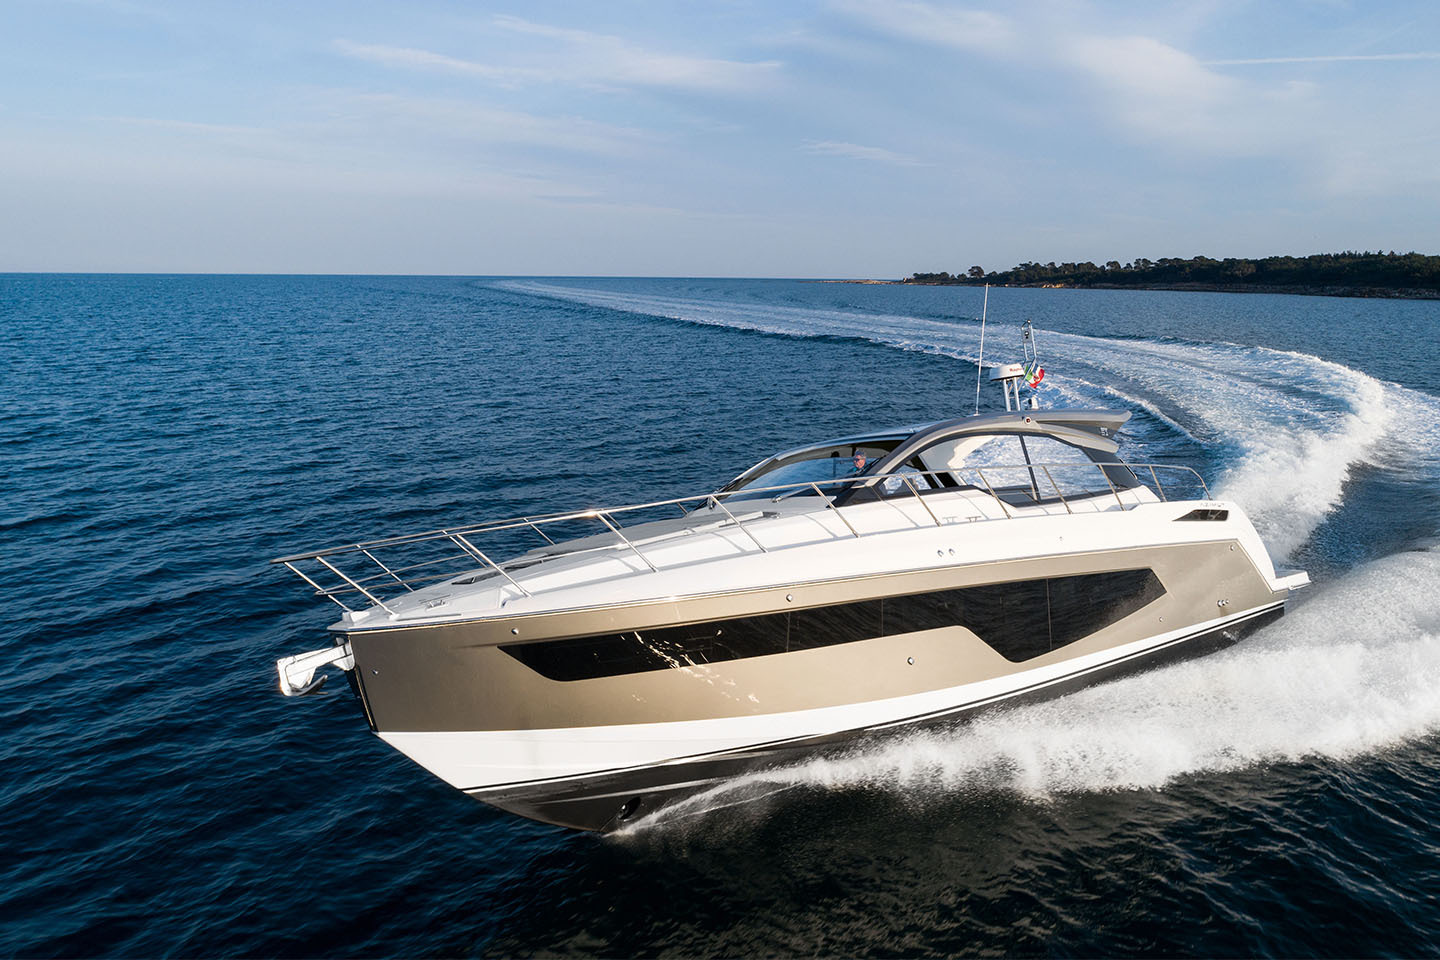 Azimut Yachts takes centre stage at the 2019 Versilia Yachting Rendez-Vous with the global launch of Atlantis 45